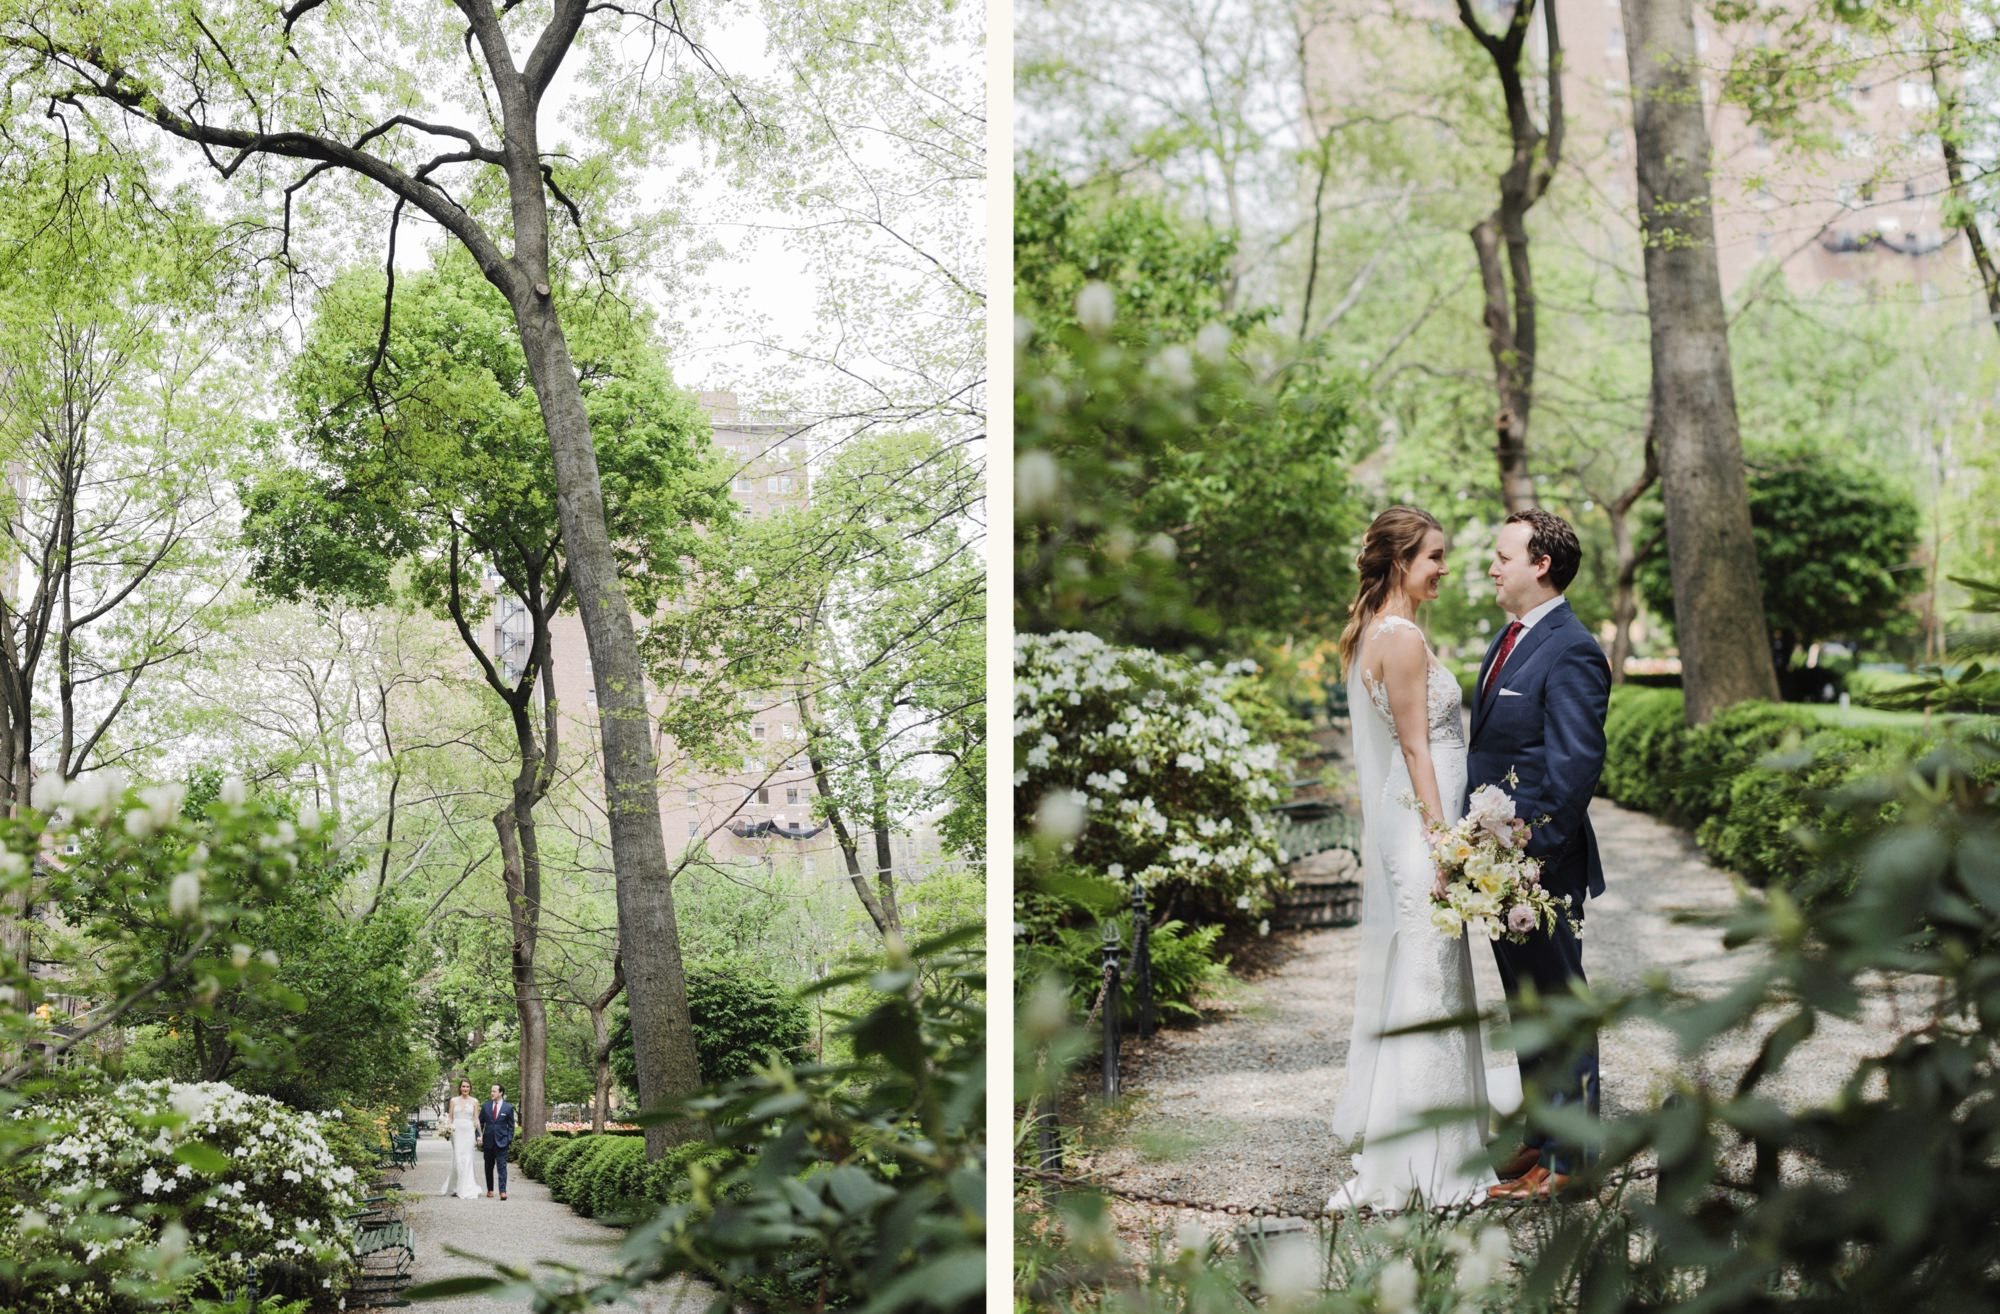 Wedding portraits inside Gramercy Park